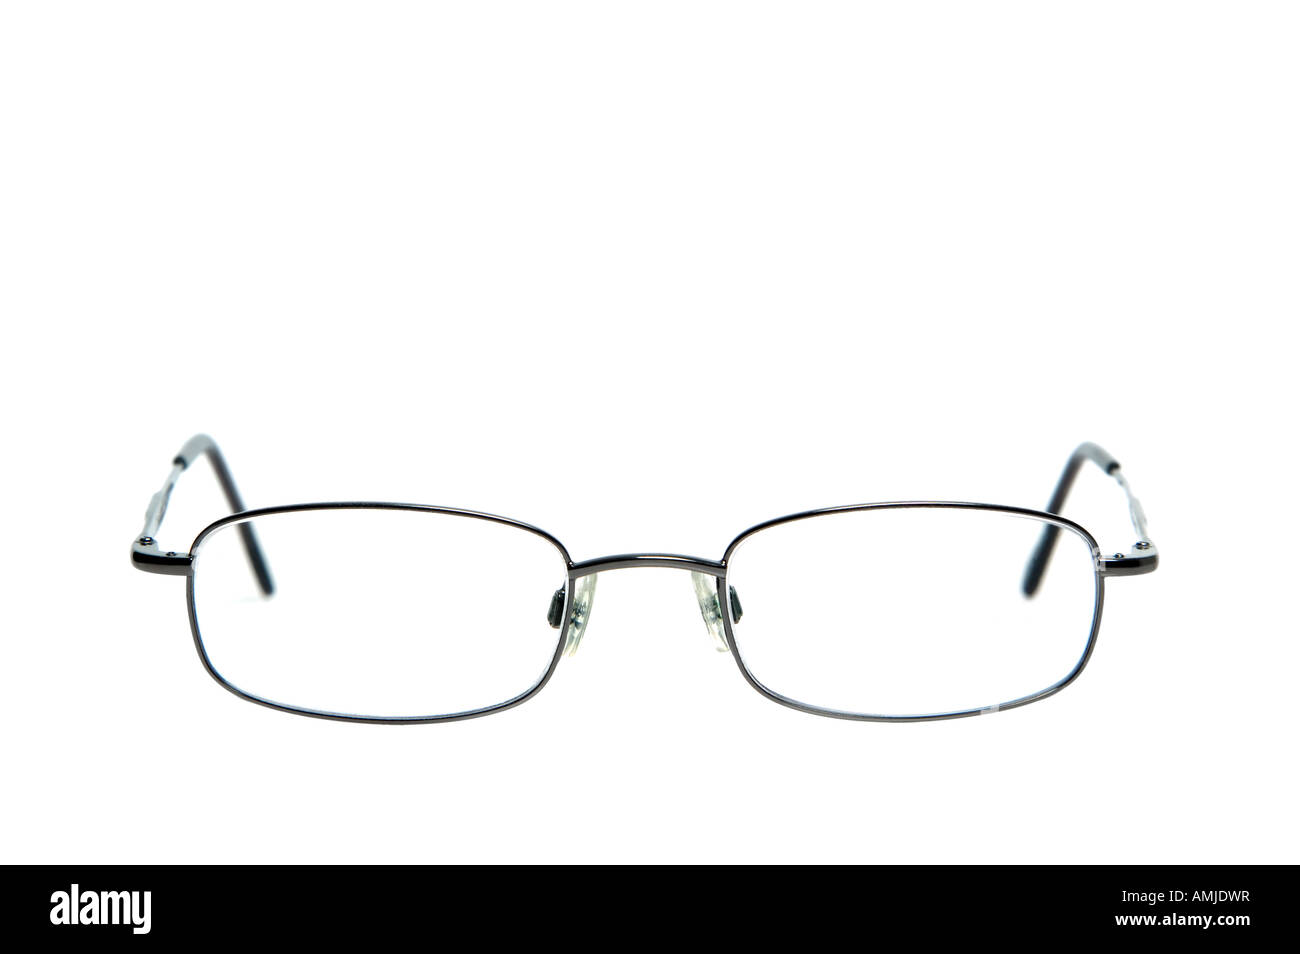 Pair of spectacles against a white background shallow DOF - Stock Image